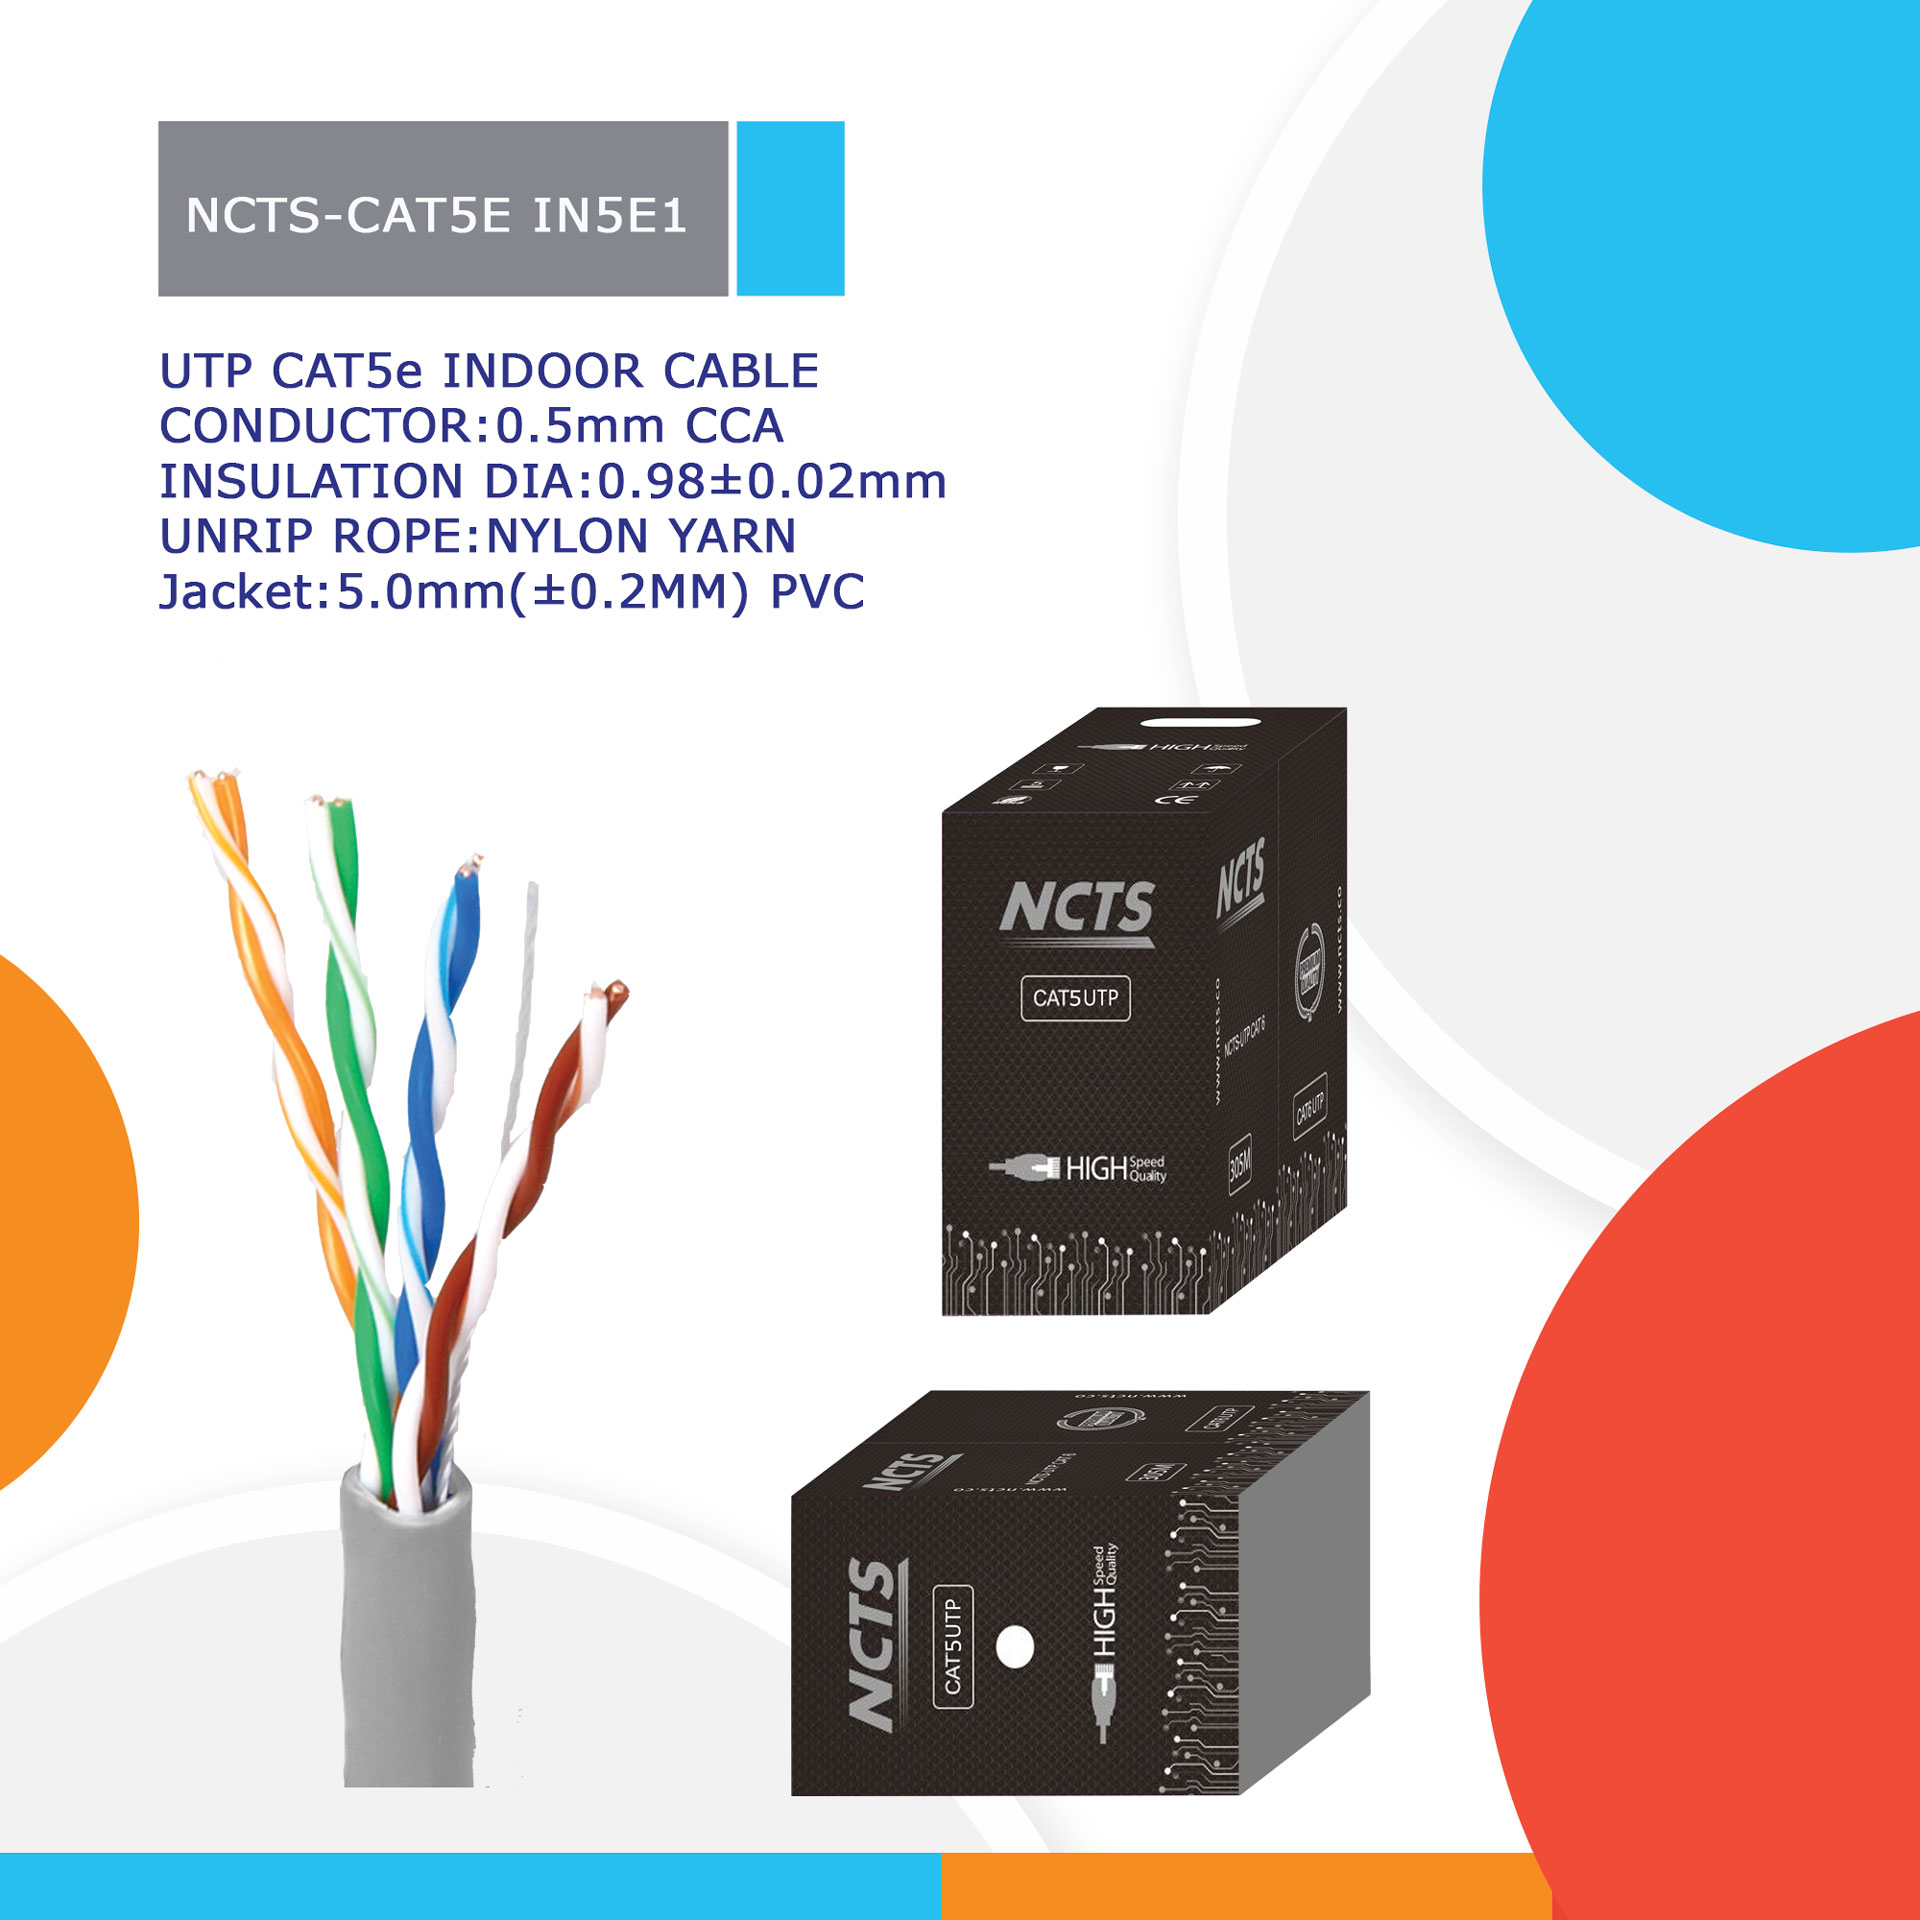 NCTS-CAT5E IN5E1